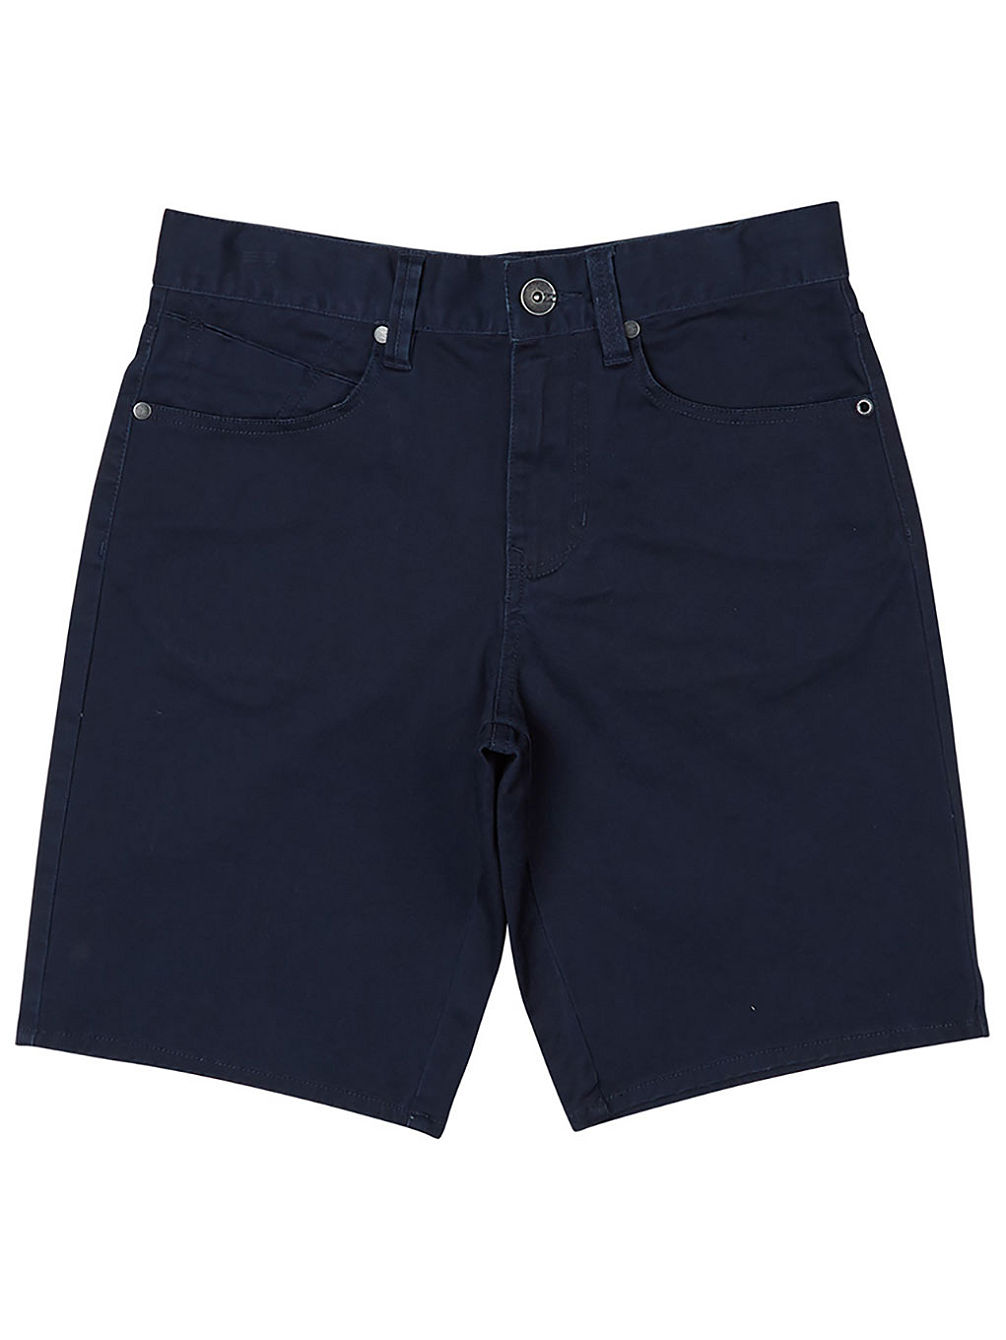 Outsider 5 Pocket Shorts Boys